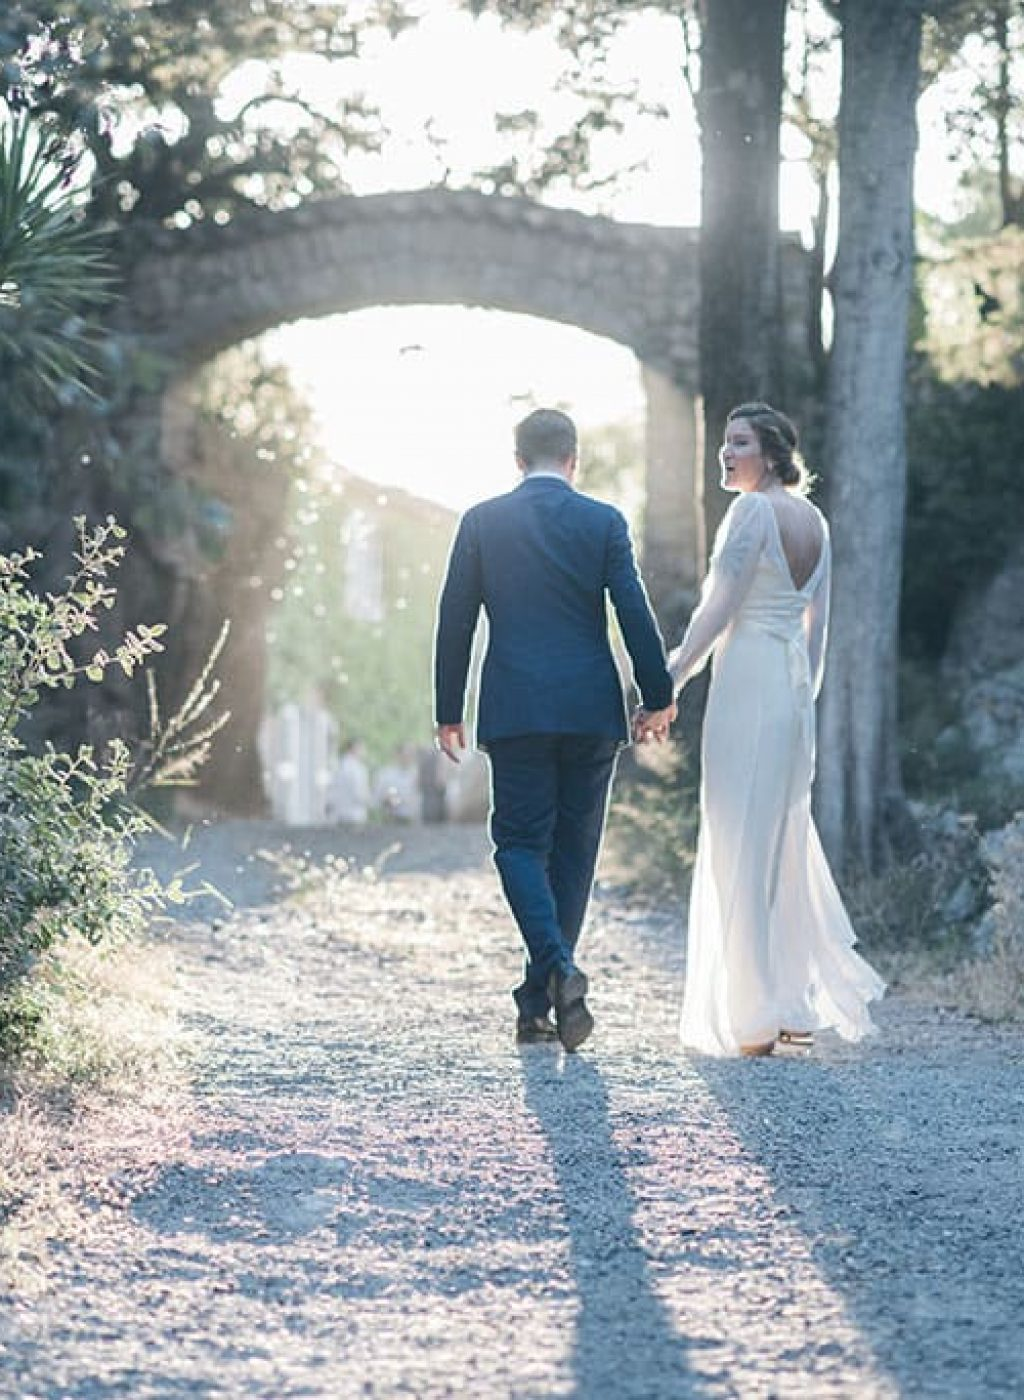 plan your wedding in a rustic farm at Mallorca